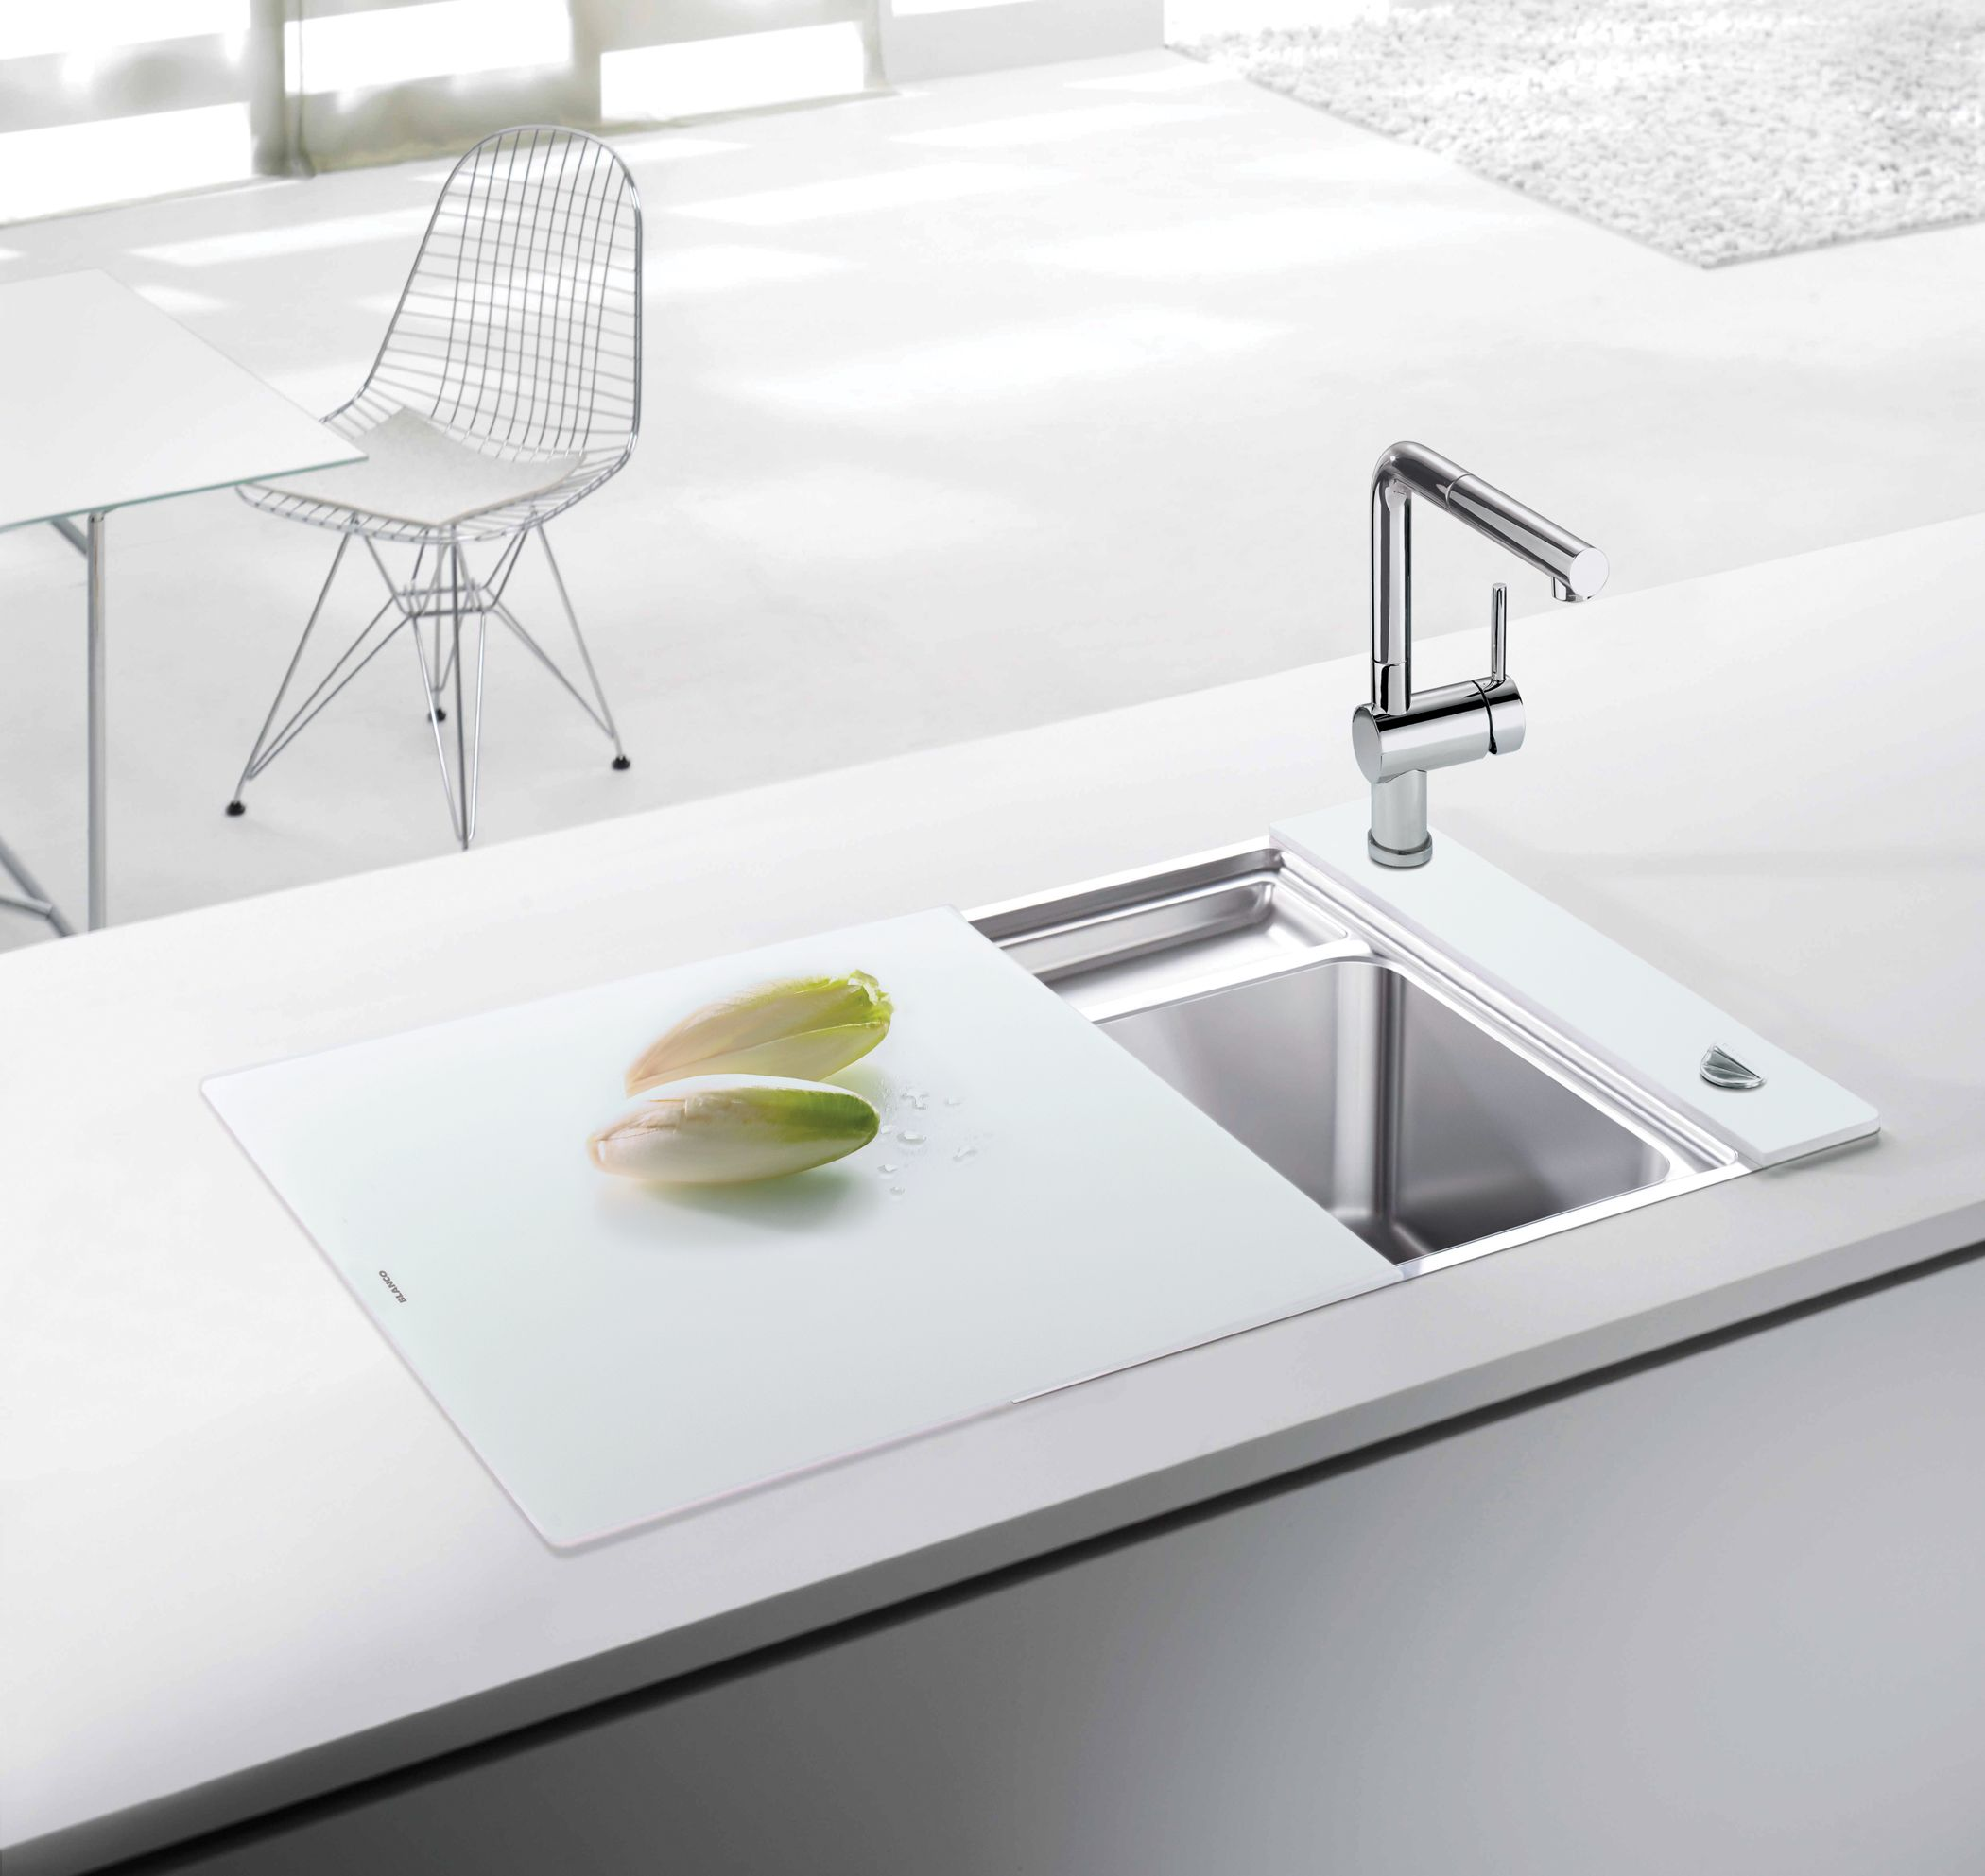 Elegant Brilliant Blanco Sinks For Kitchen Furniture Ideas: Great Blanco Sinks With  Cover And Stainless Steel